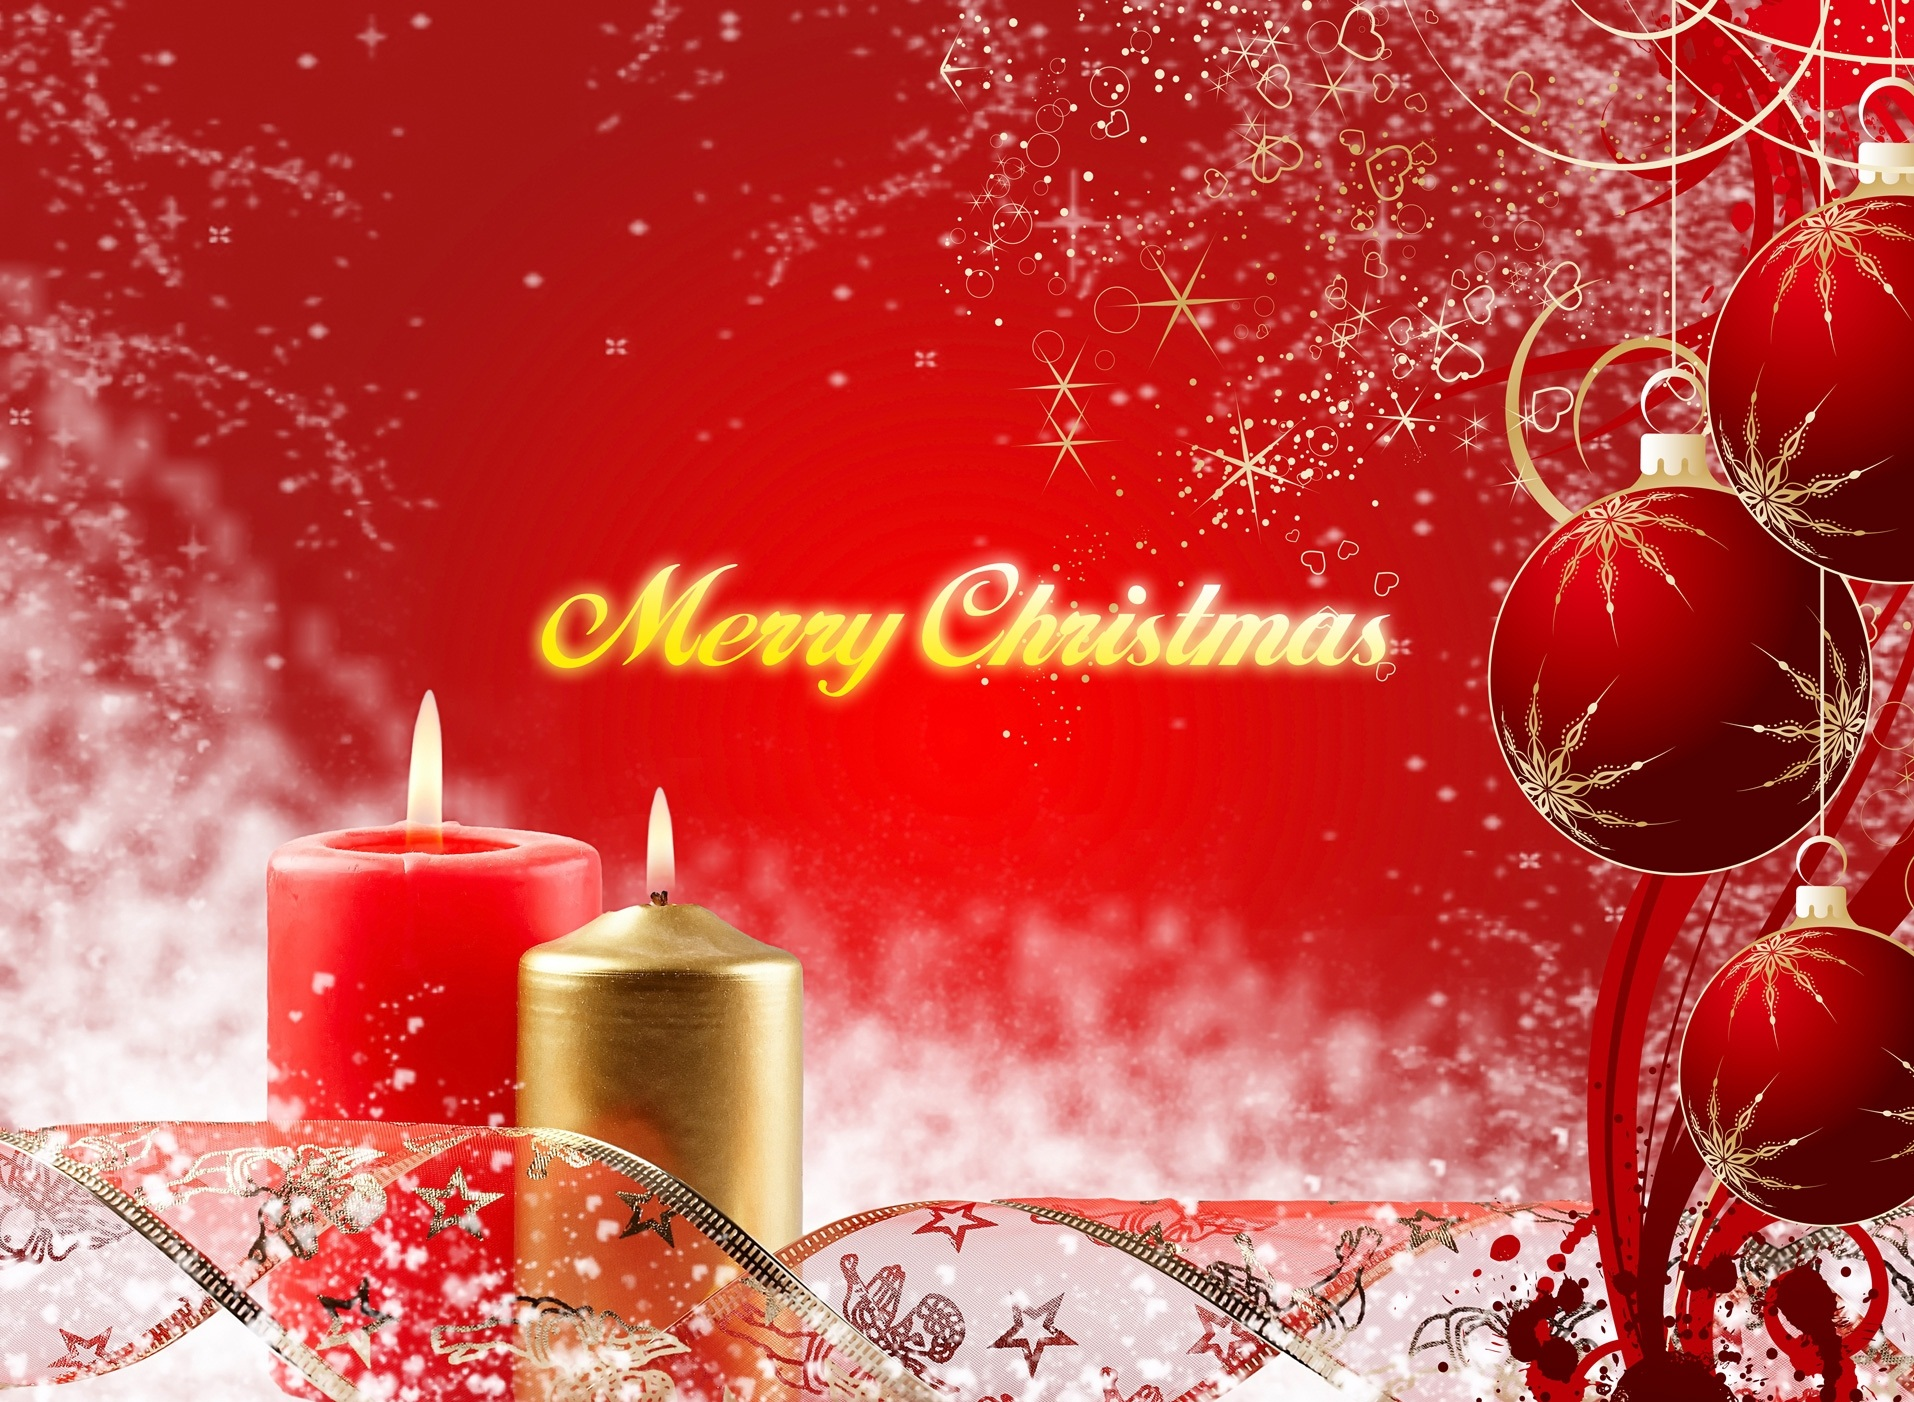 Christmas Screensavers Christmas Screensavers Hd Christmas 1914x1402